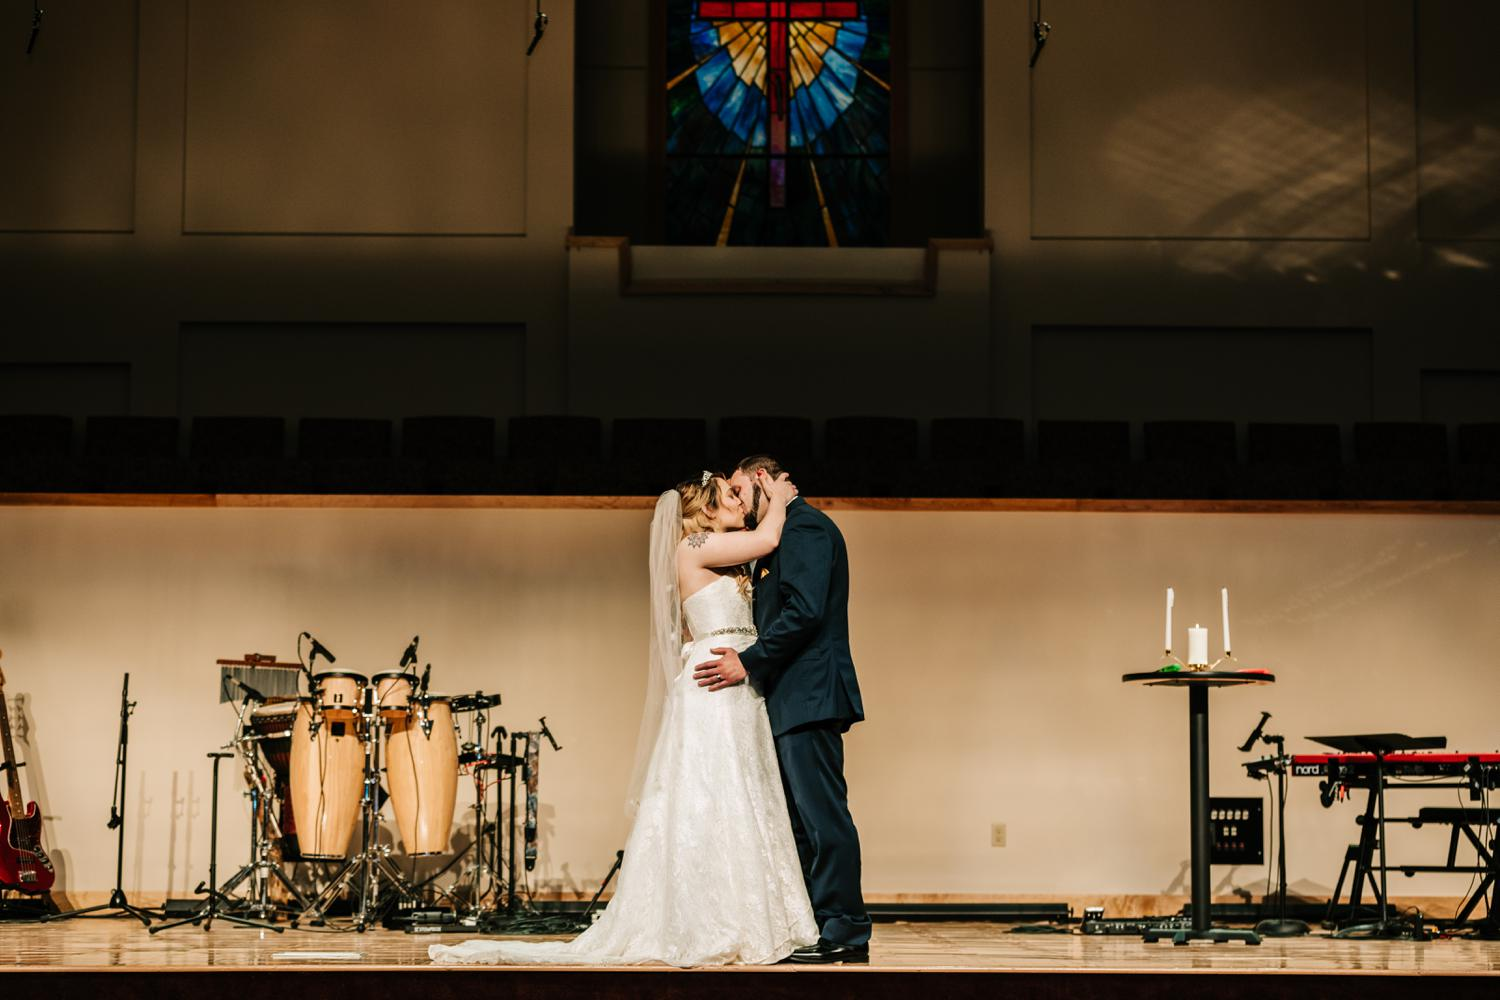 Tattoed bride' and groom's first kiss at altar